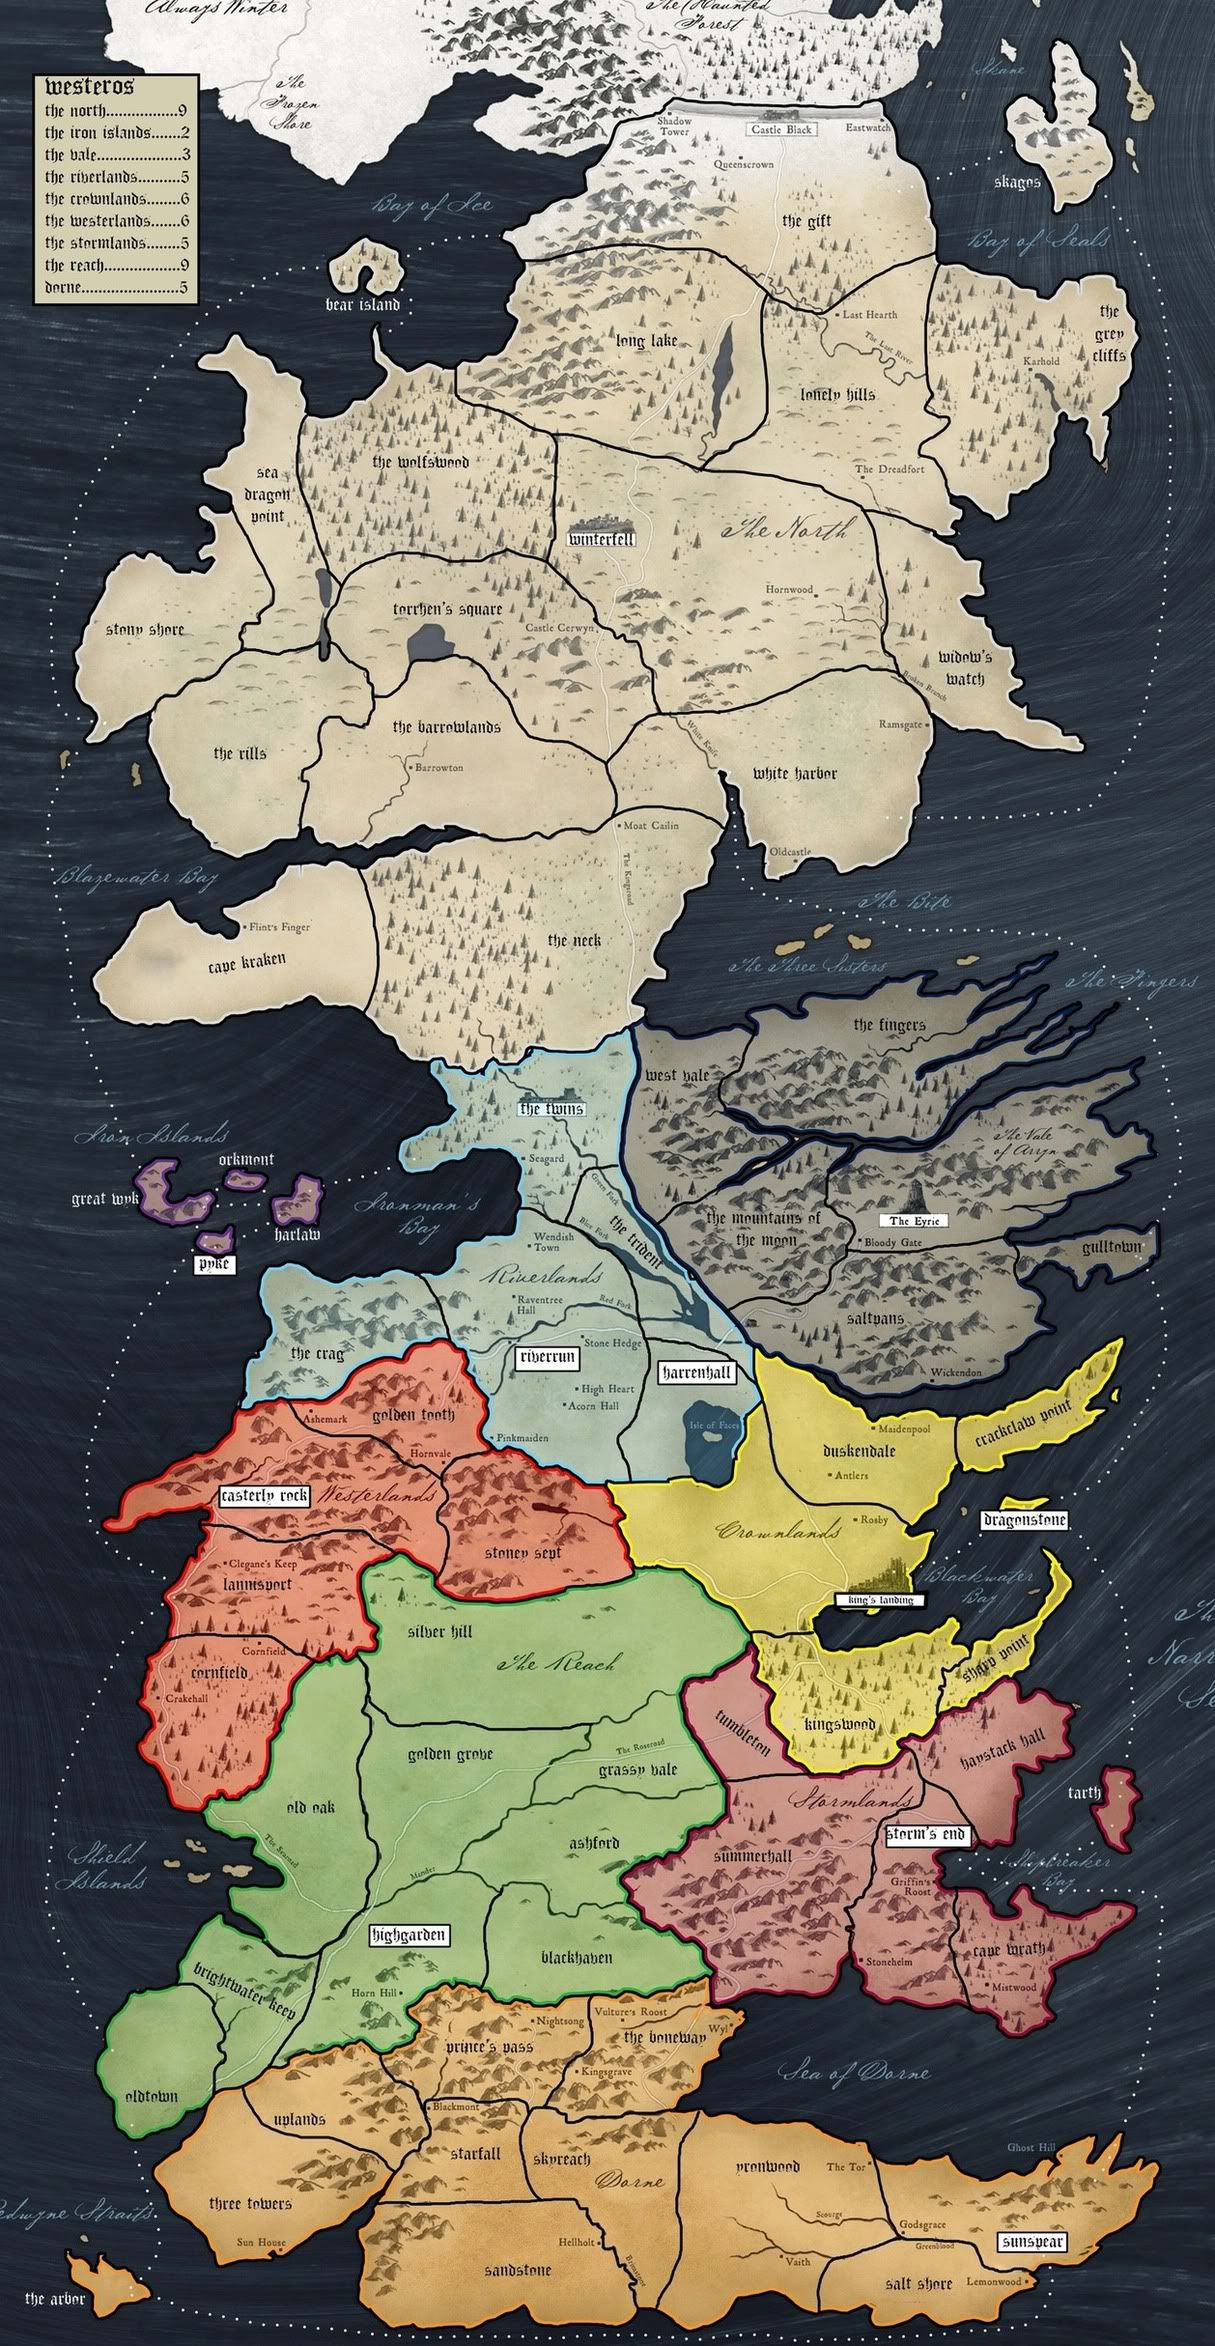 Map of westeros in game of thrones 4k pictures 4k pictures full thrones game of thrones westeros map x poster the known world game of thrones wiki fandom powered by wikia the known world westeros game of thrones wiki gumiabroncs Gallery